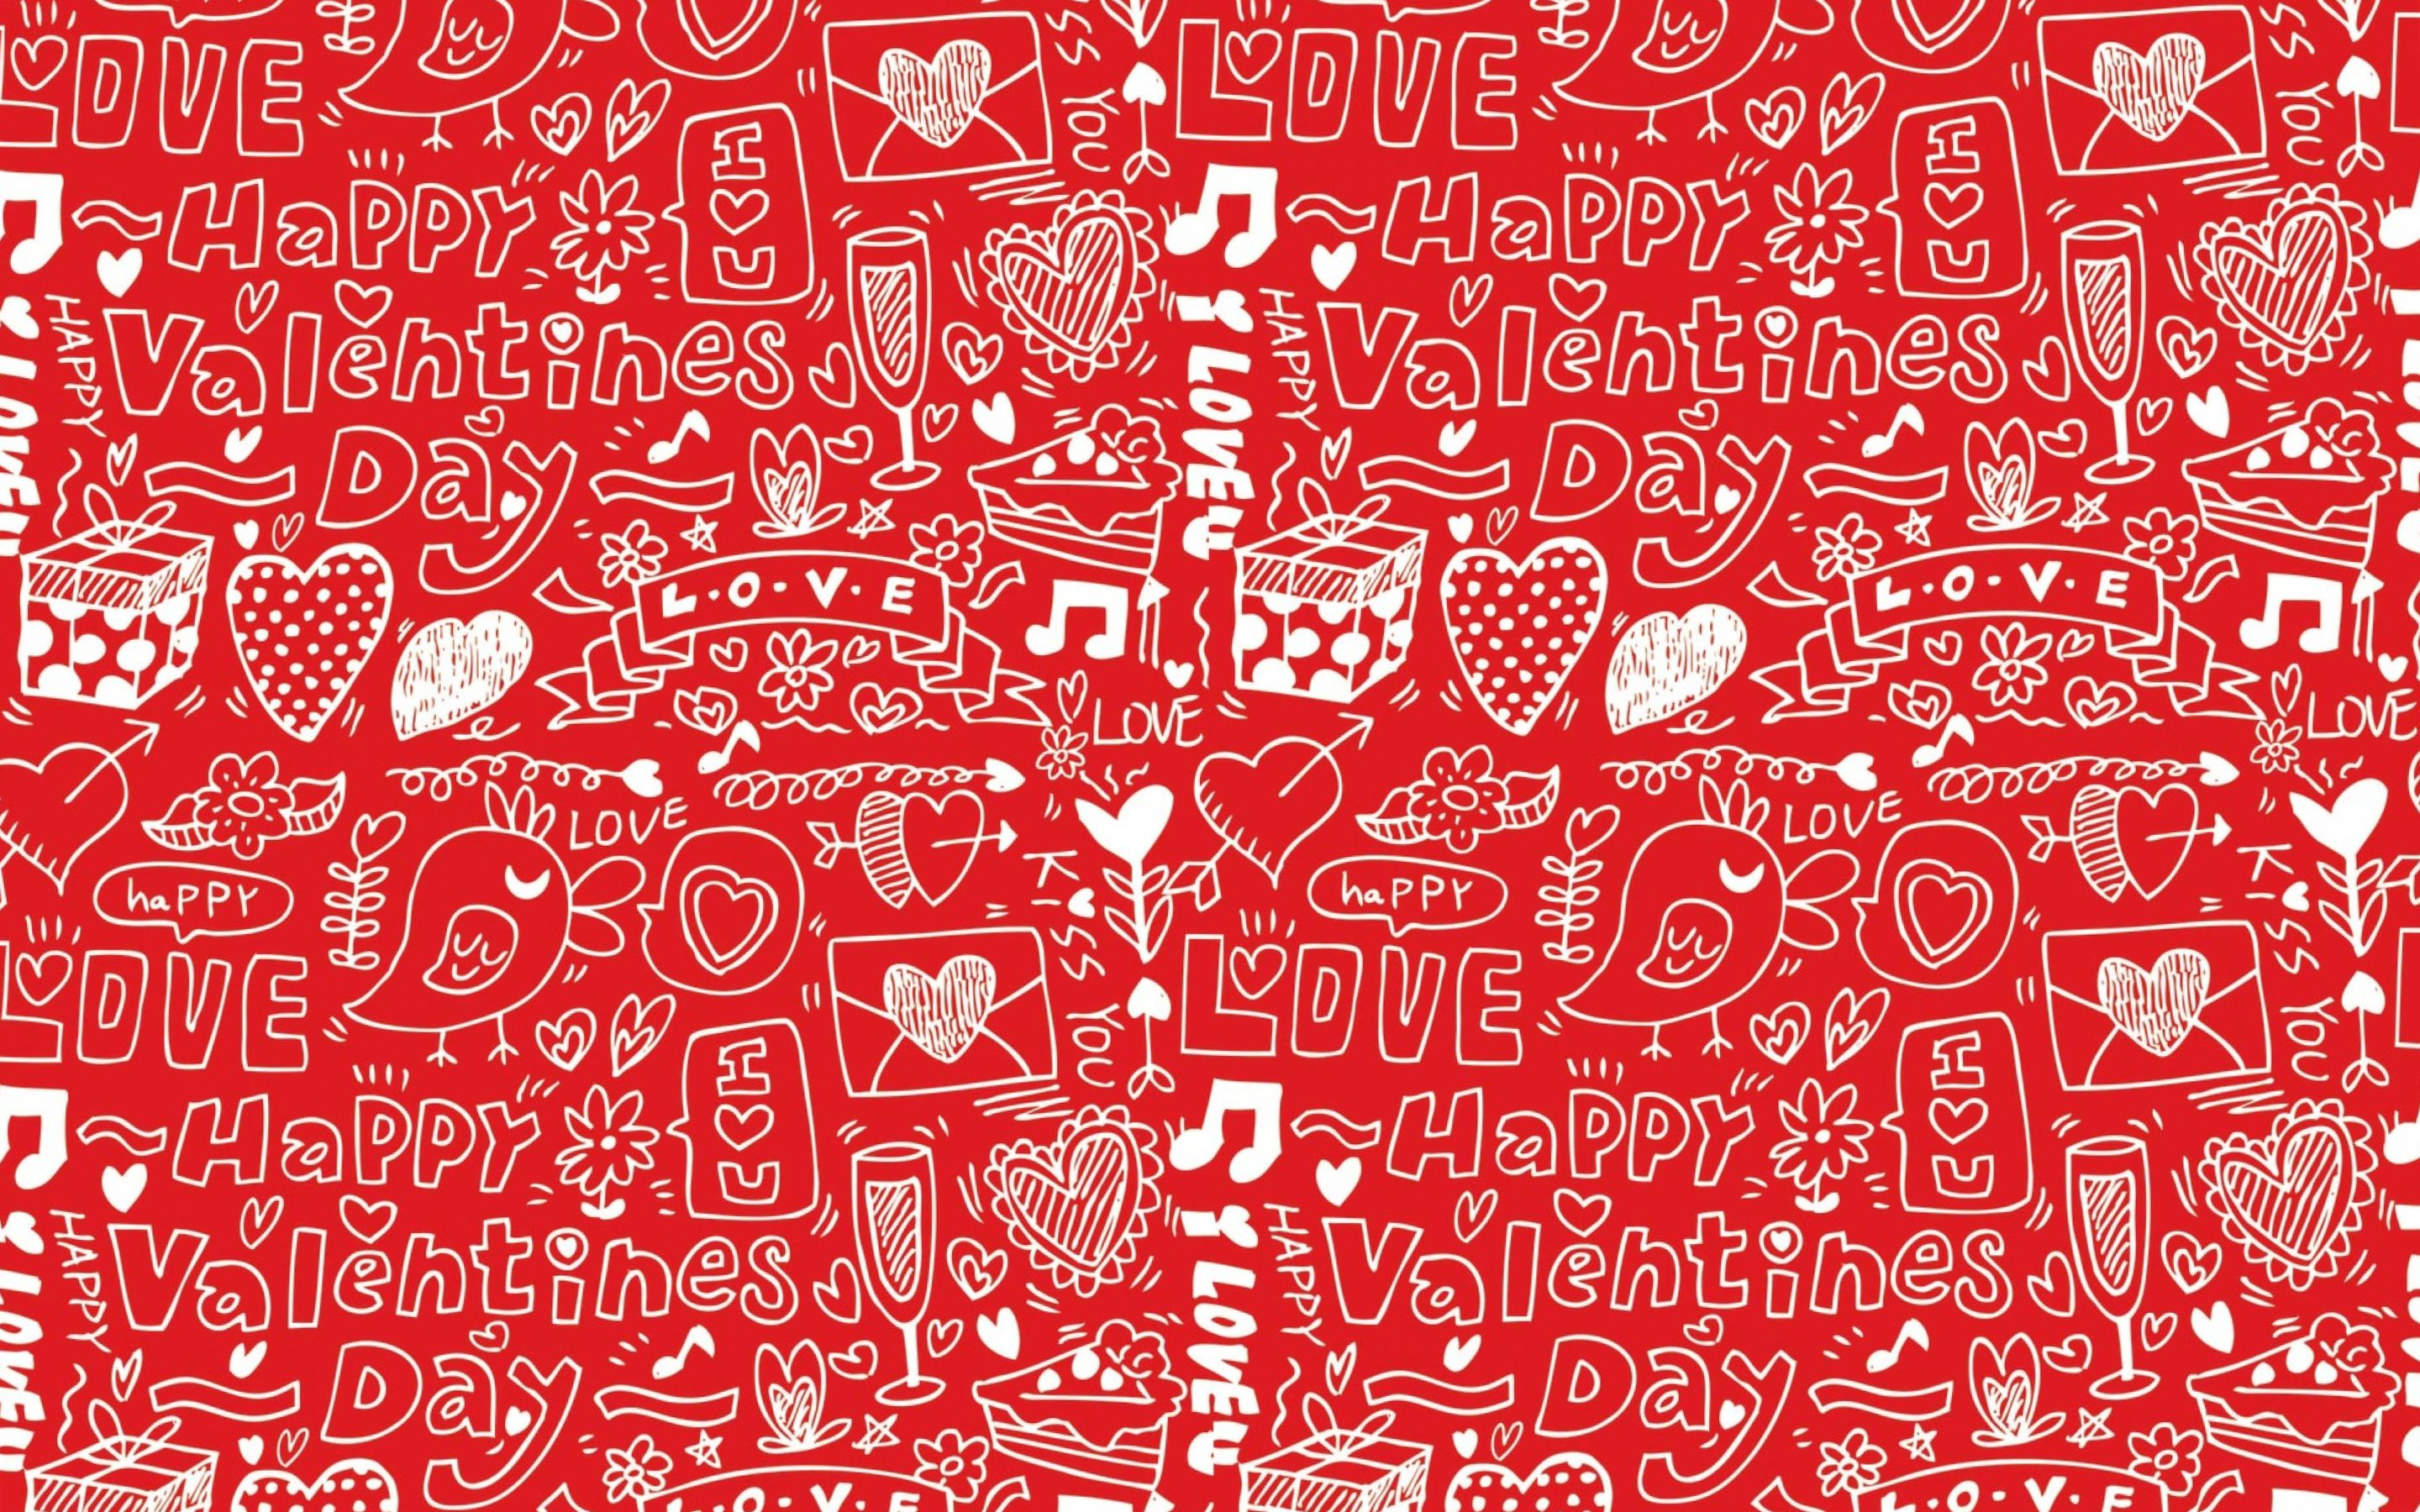 Love (Backgrounds)